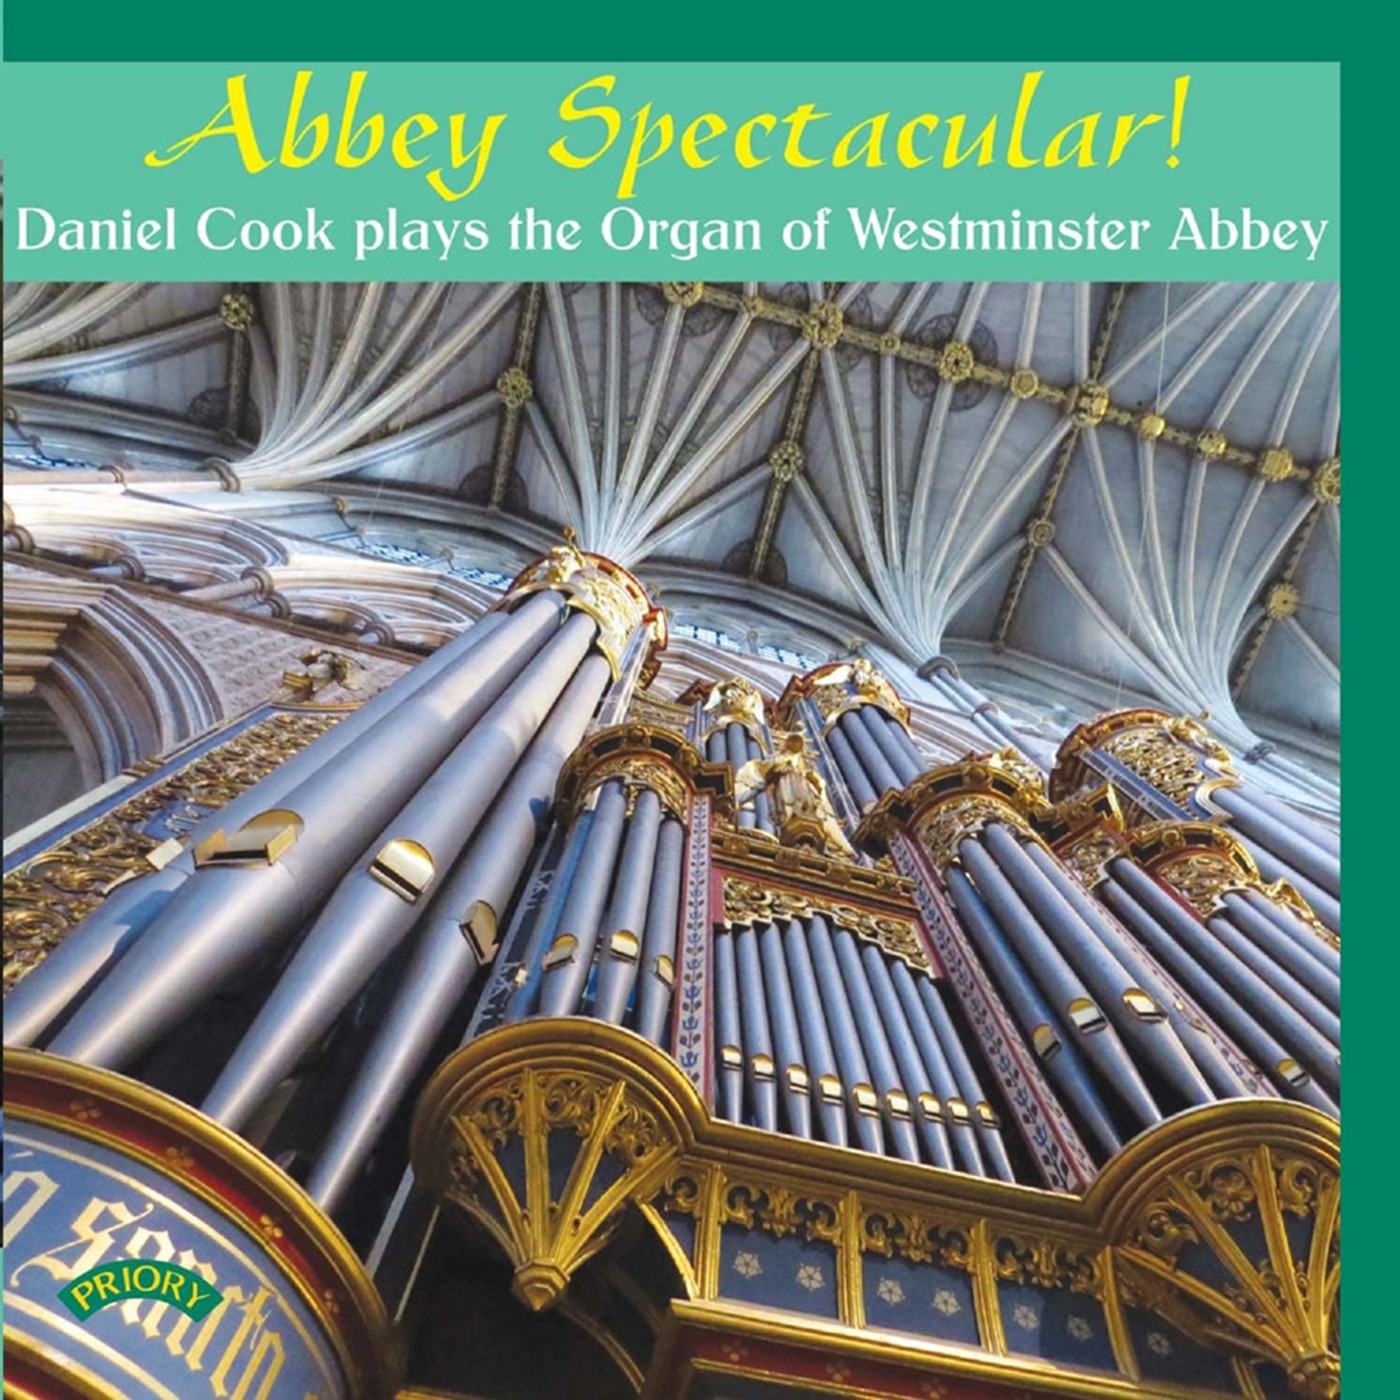 daniel-cook-abbey-spectacular.jpg